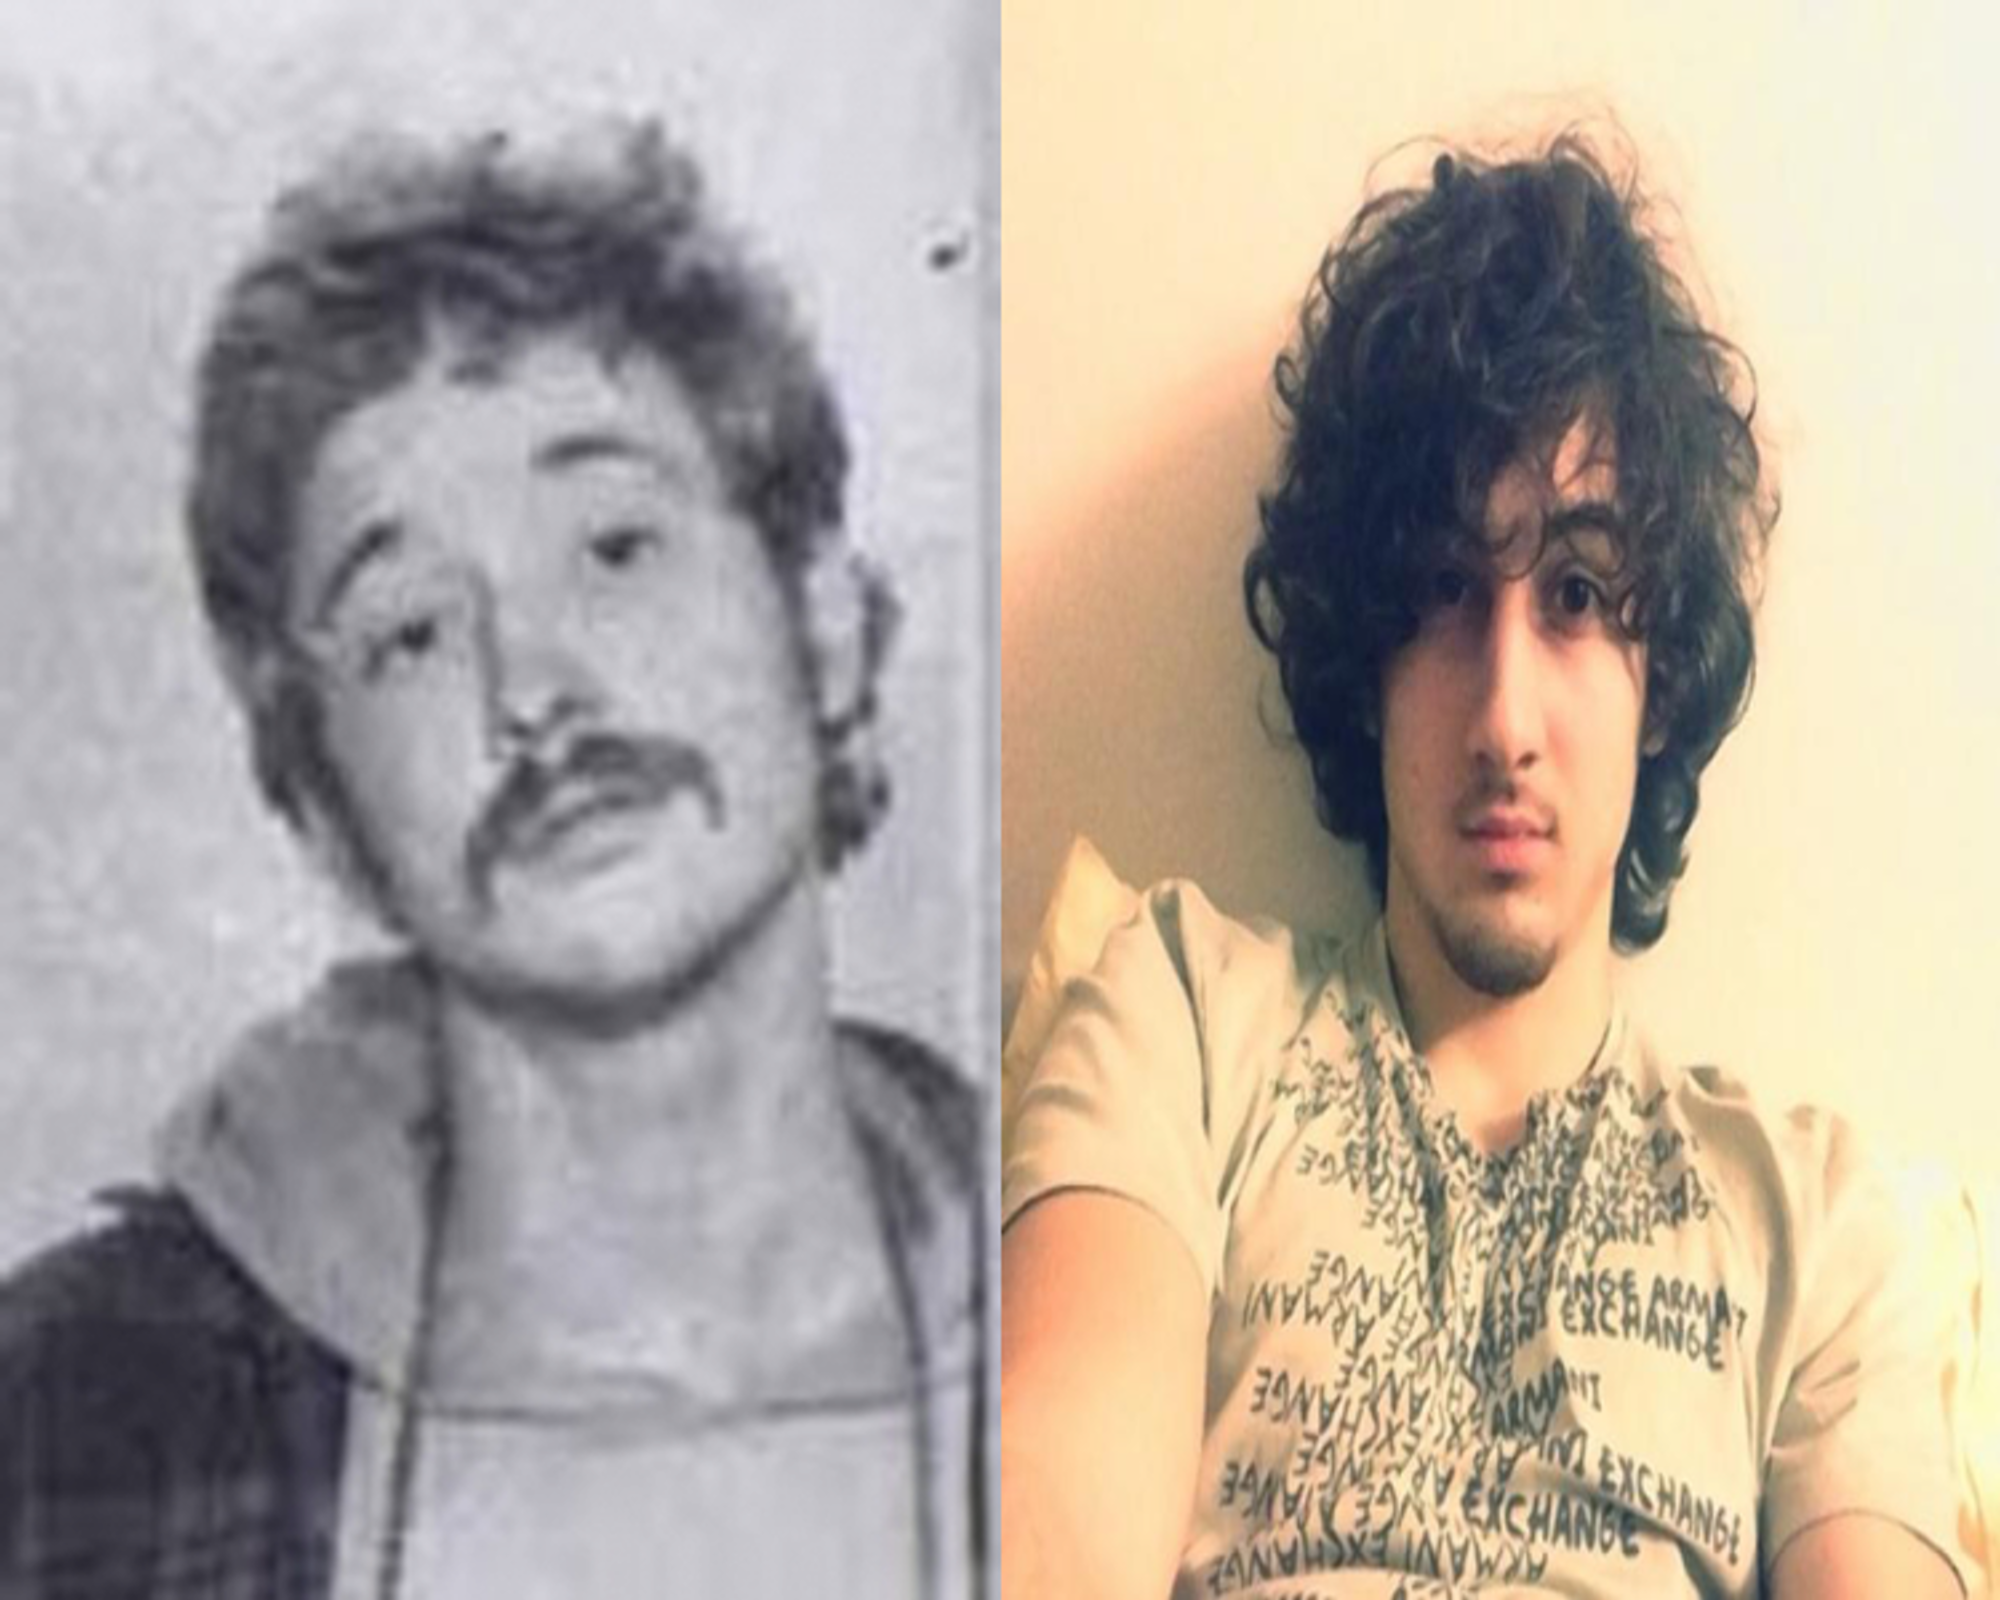 Bill Ayers and Dzokhar Tsarnaev side by side. Photo courtesy of Cold Warrior.